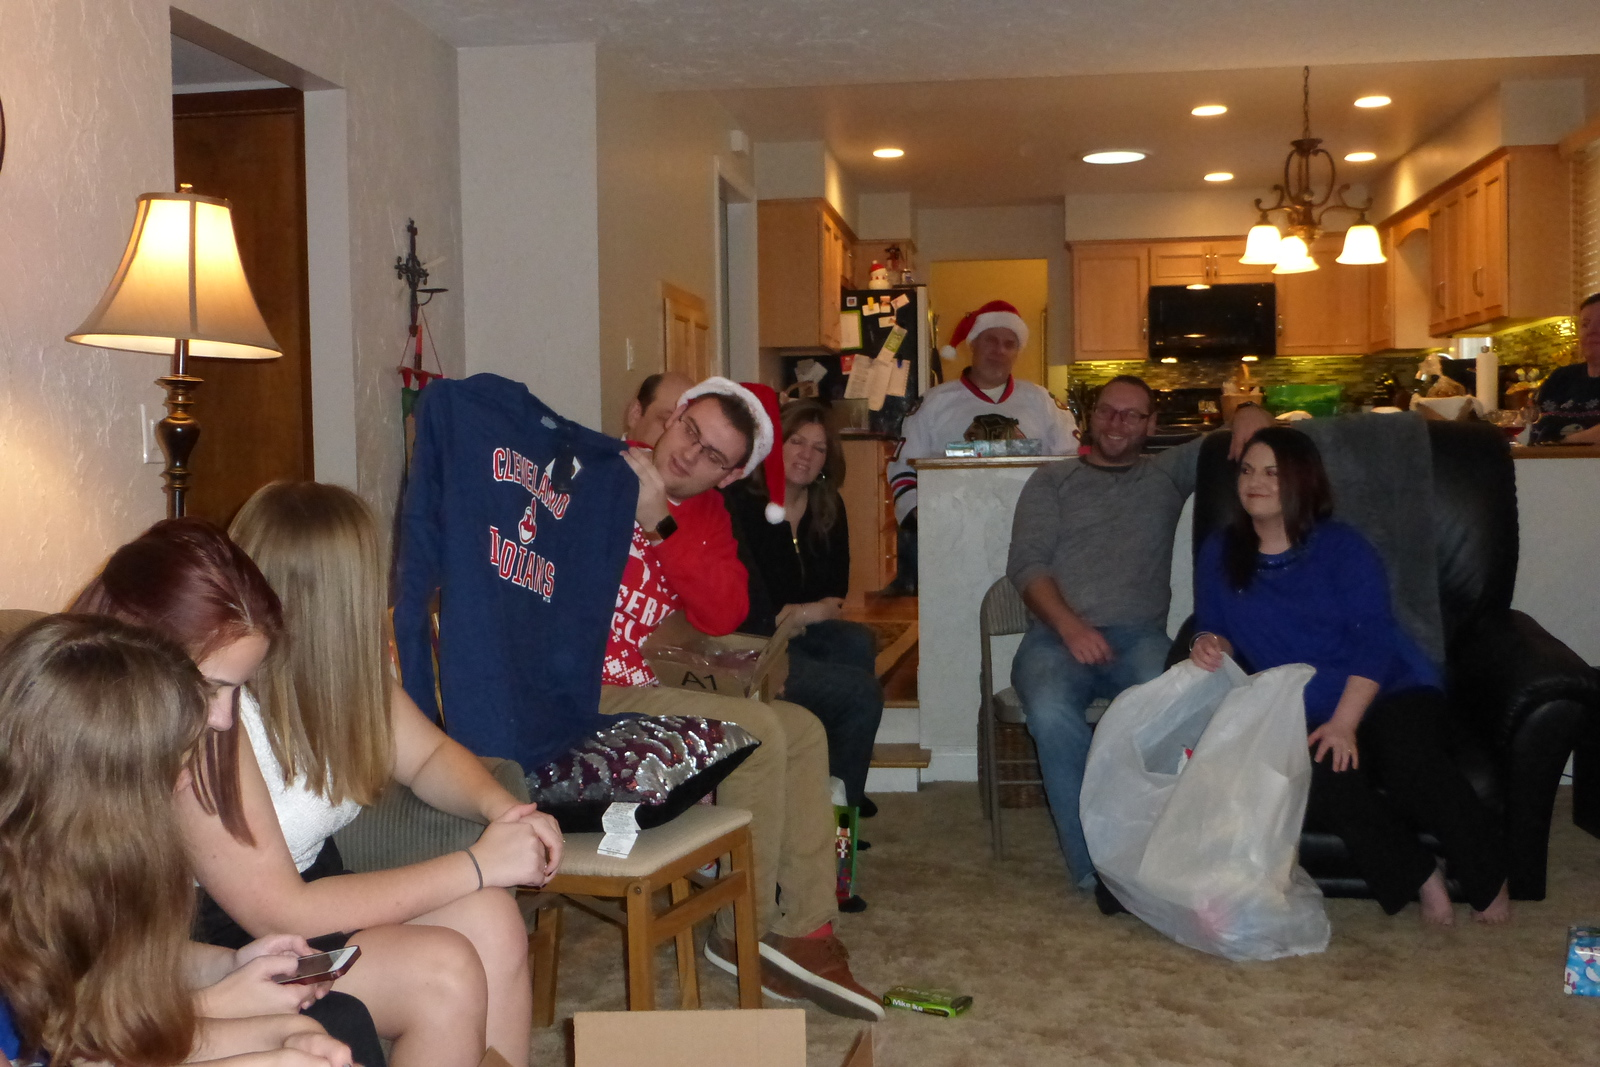 Jake opening up his gifts